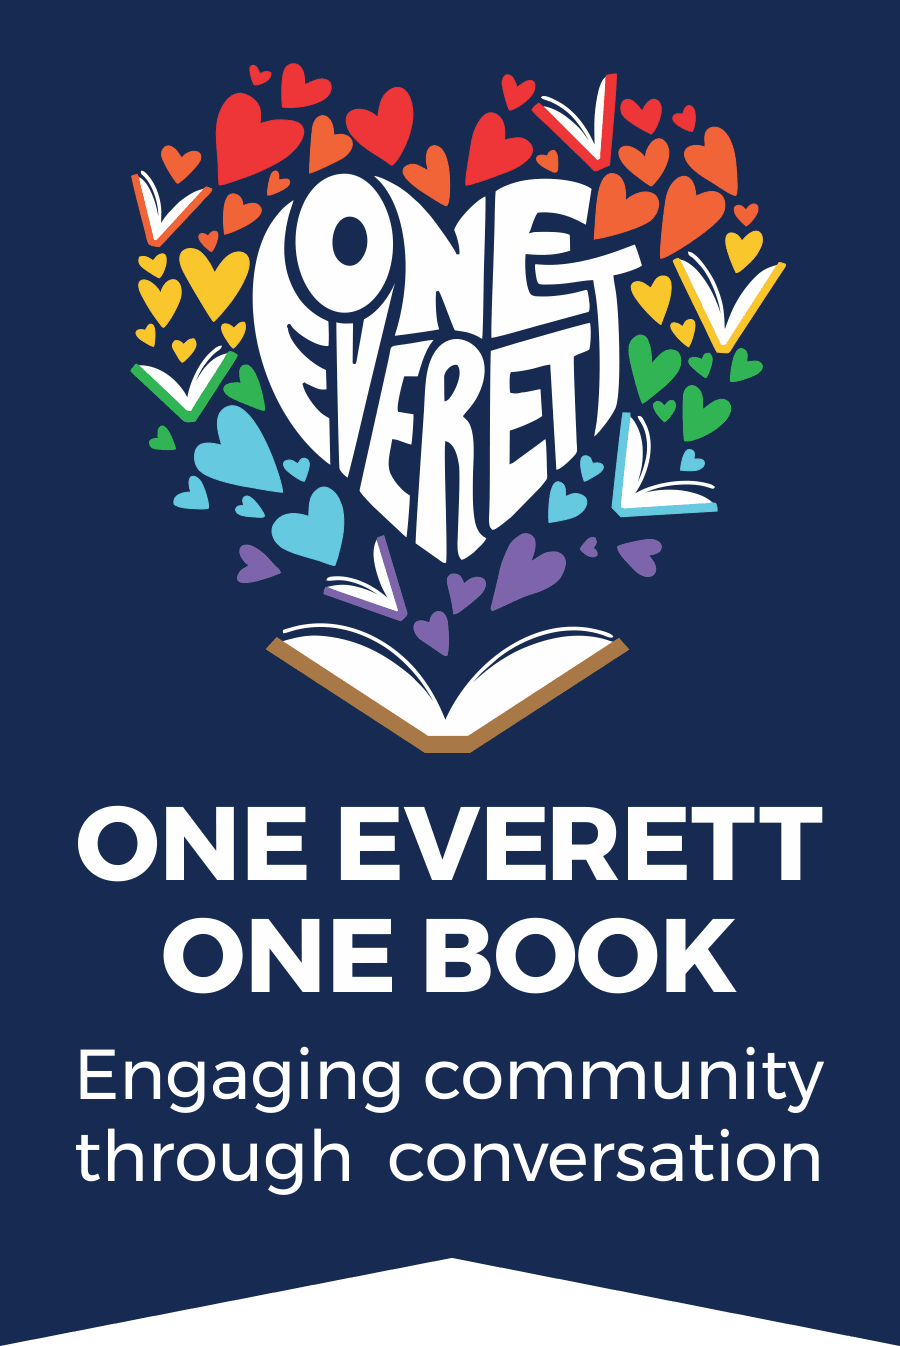 One Everett One Book logo illustration of word Everett surrounded by hearts and books